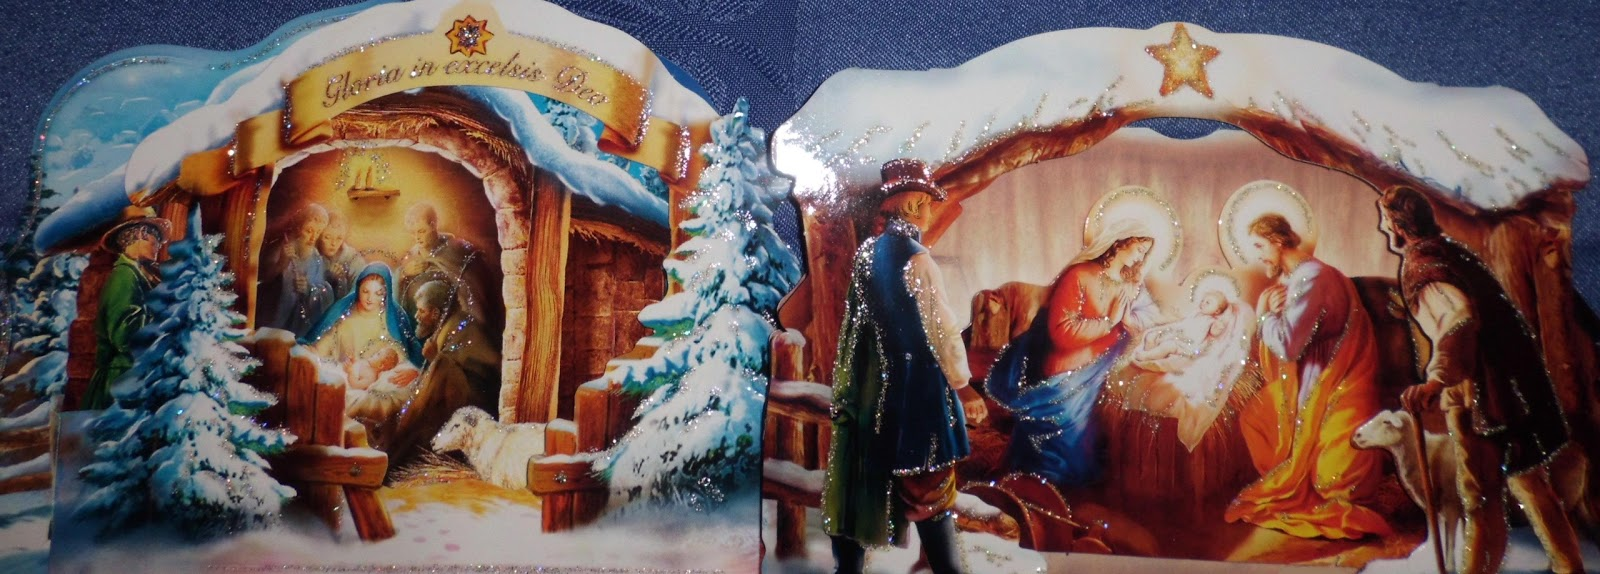 Foreigner in finland christmas cards overview some of the polish cards present santa claus or the christmas tree some are amusing but most of them refer to the birth of christ present nativity scenes m4hsunfo